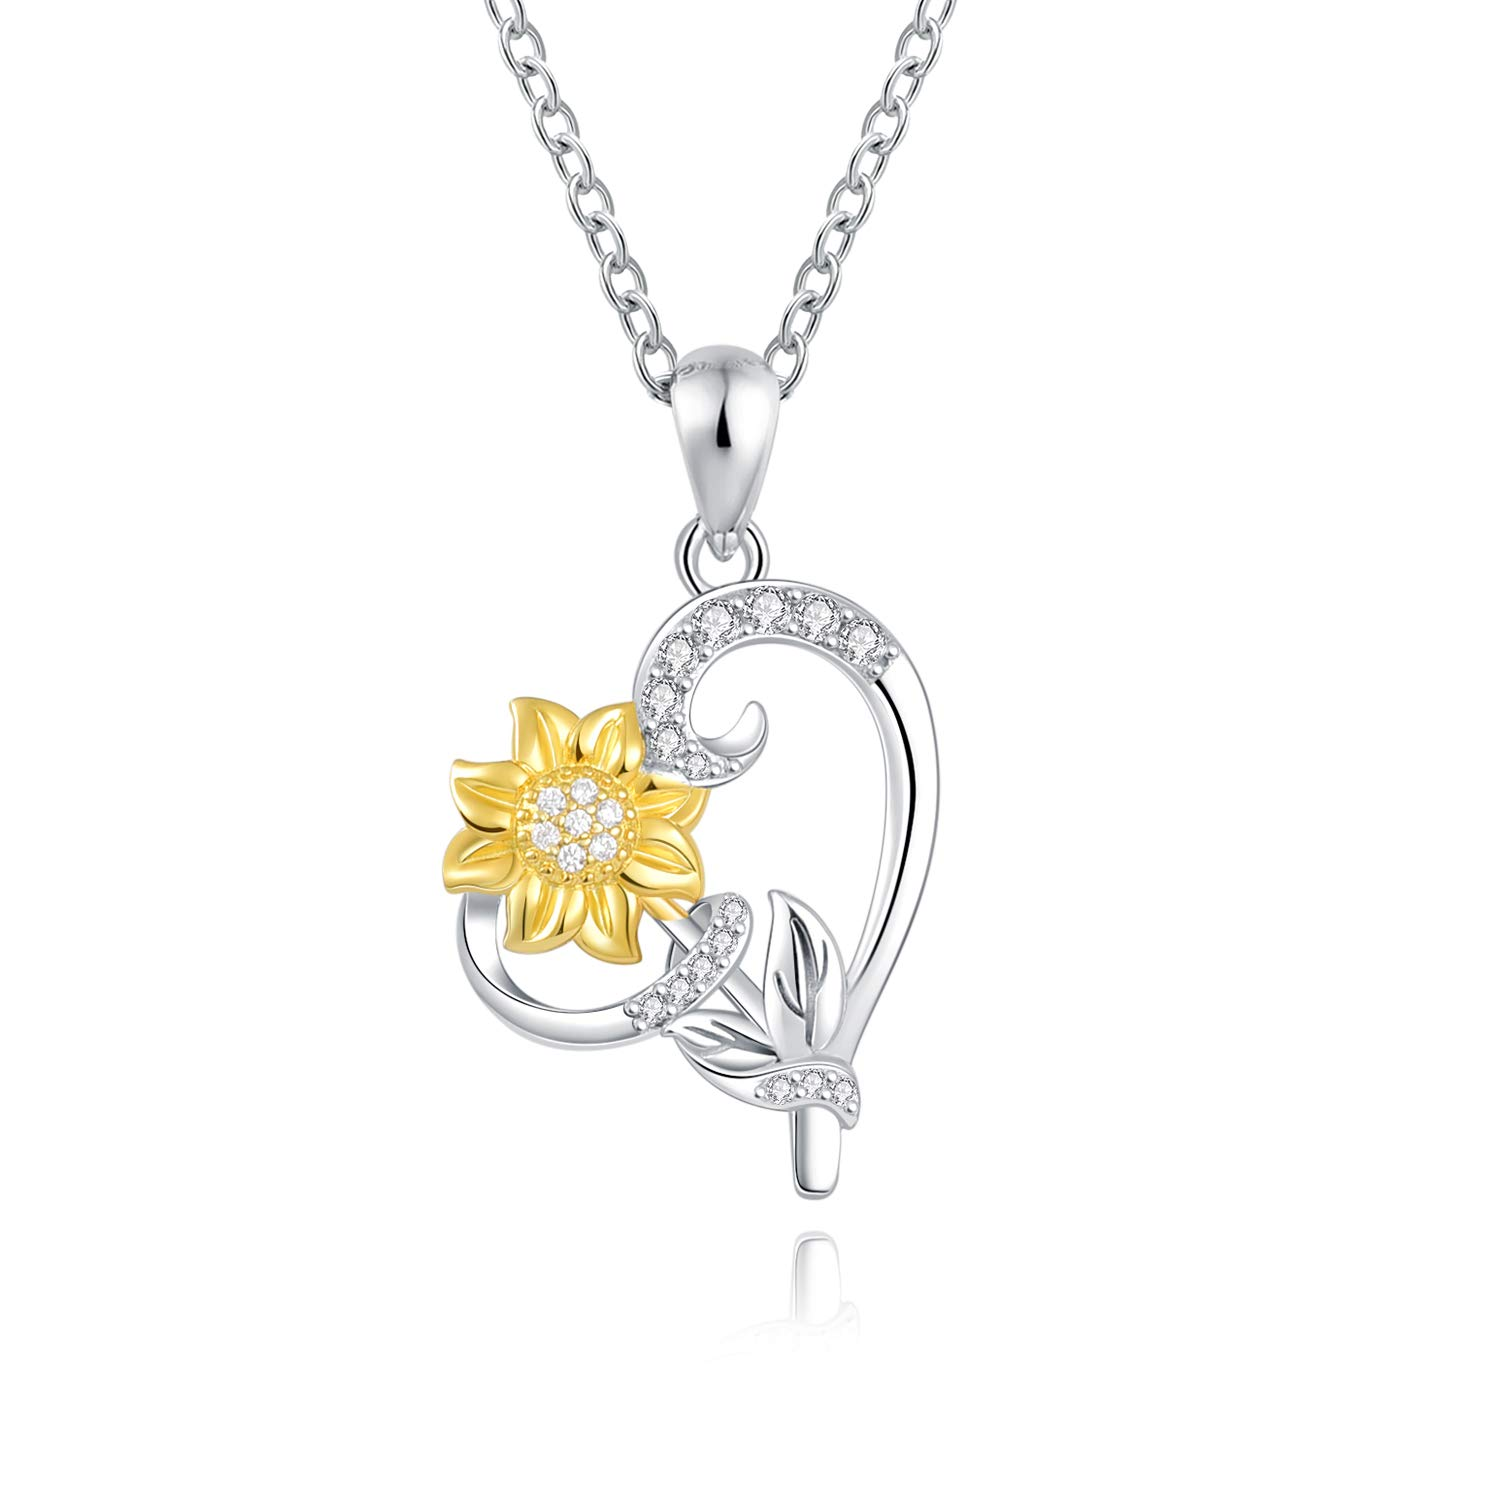 925 Sterling Silver Sunflower Pendant Heart Necklace Jewelry for Women Birthday Anniversary You are my Sunshine